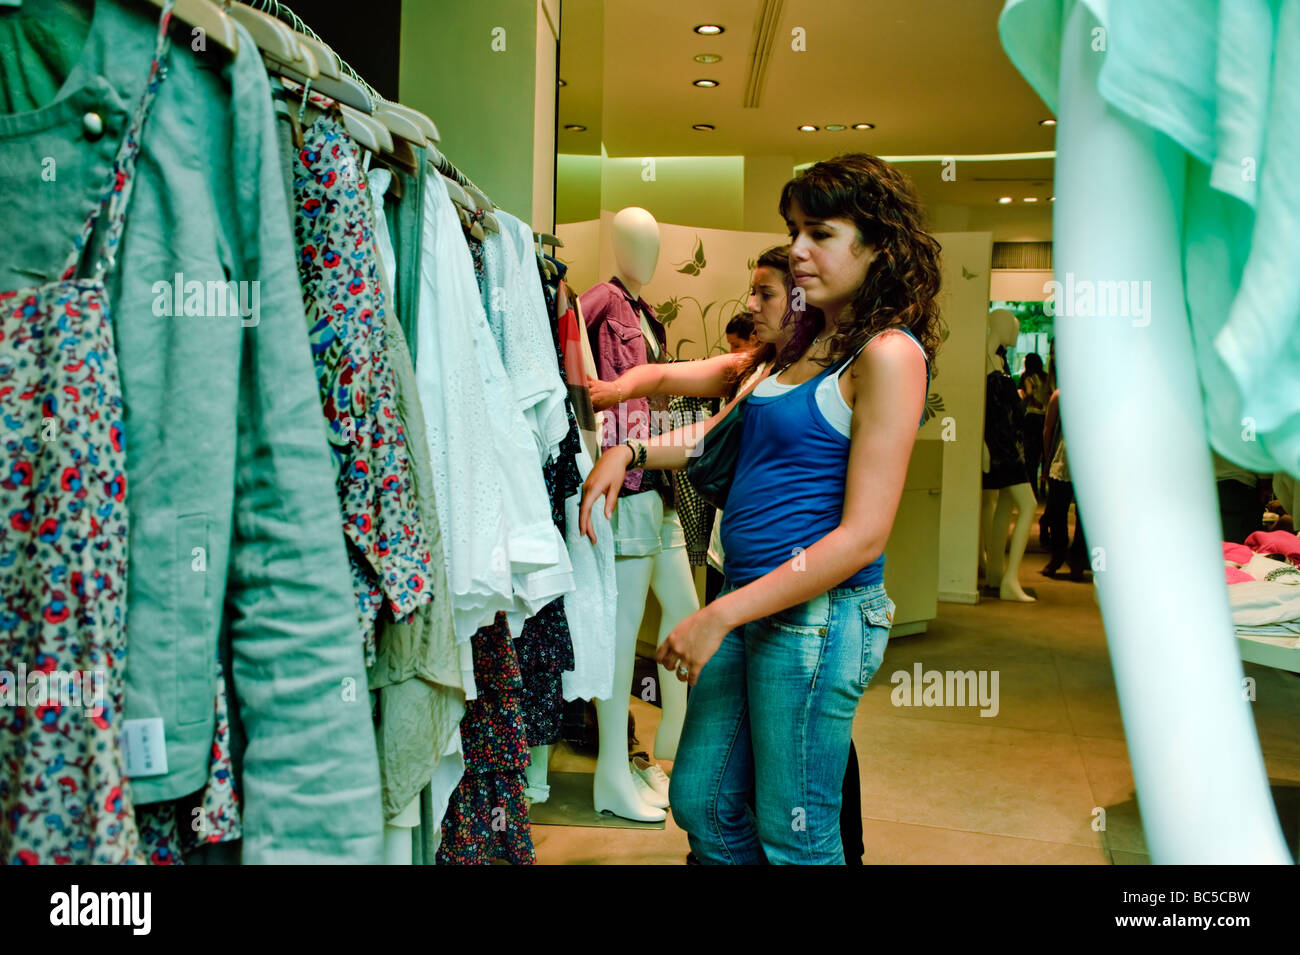 Paris France, Clothes Shopping Woman in Sandro Shop, in the Marais, Boutique 'Summer Sales' - Stock Image